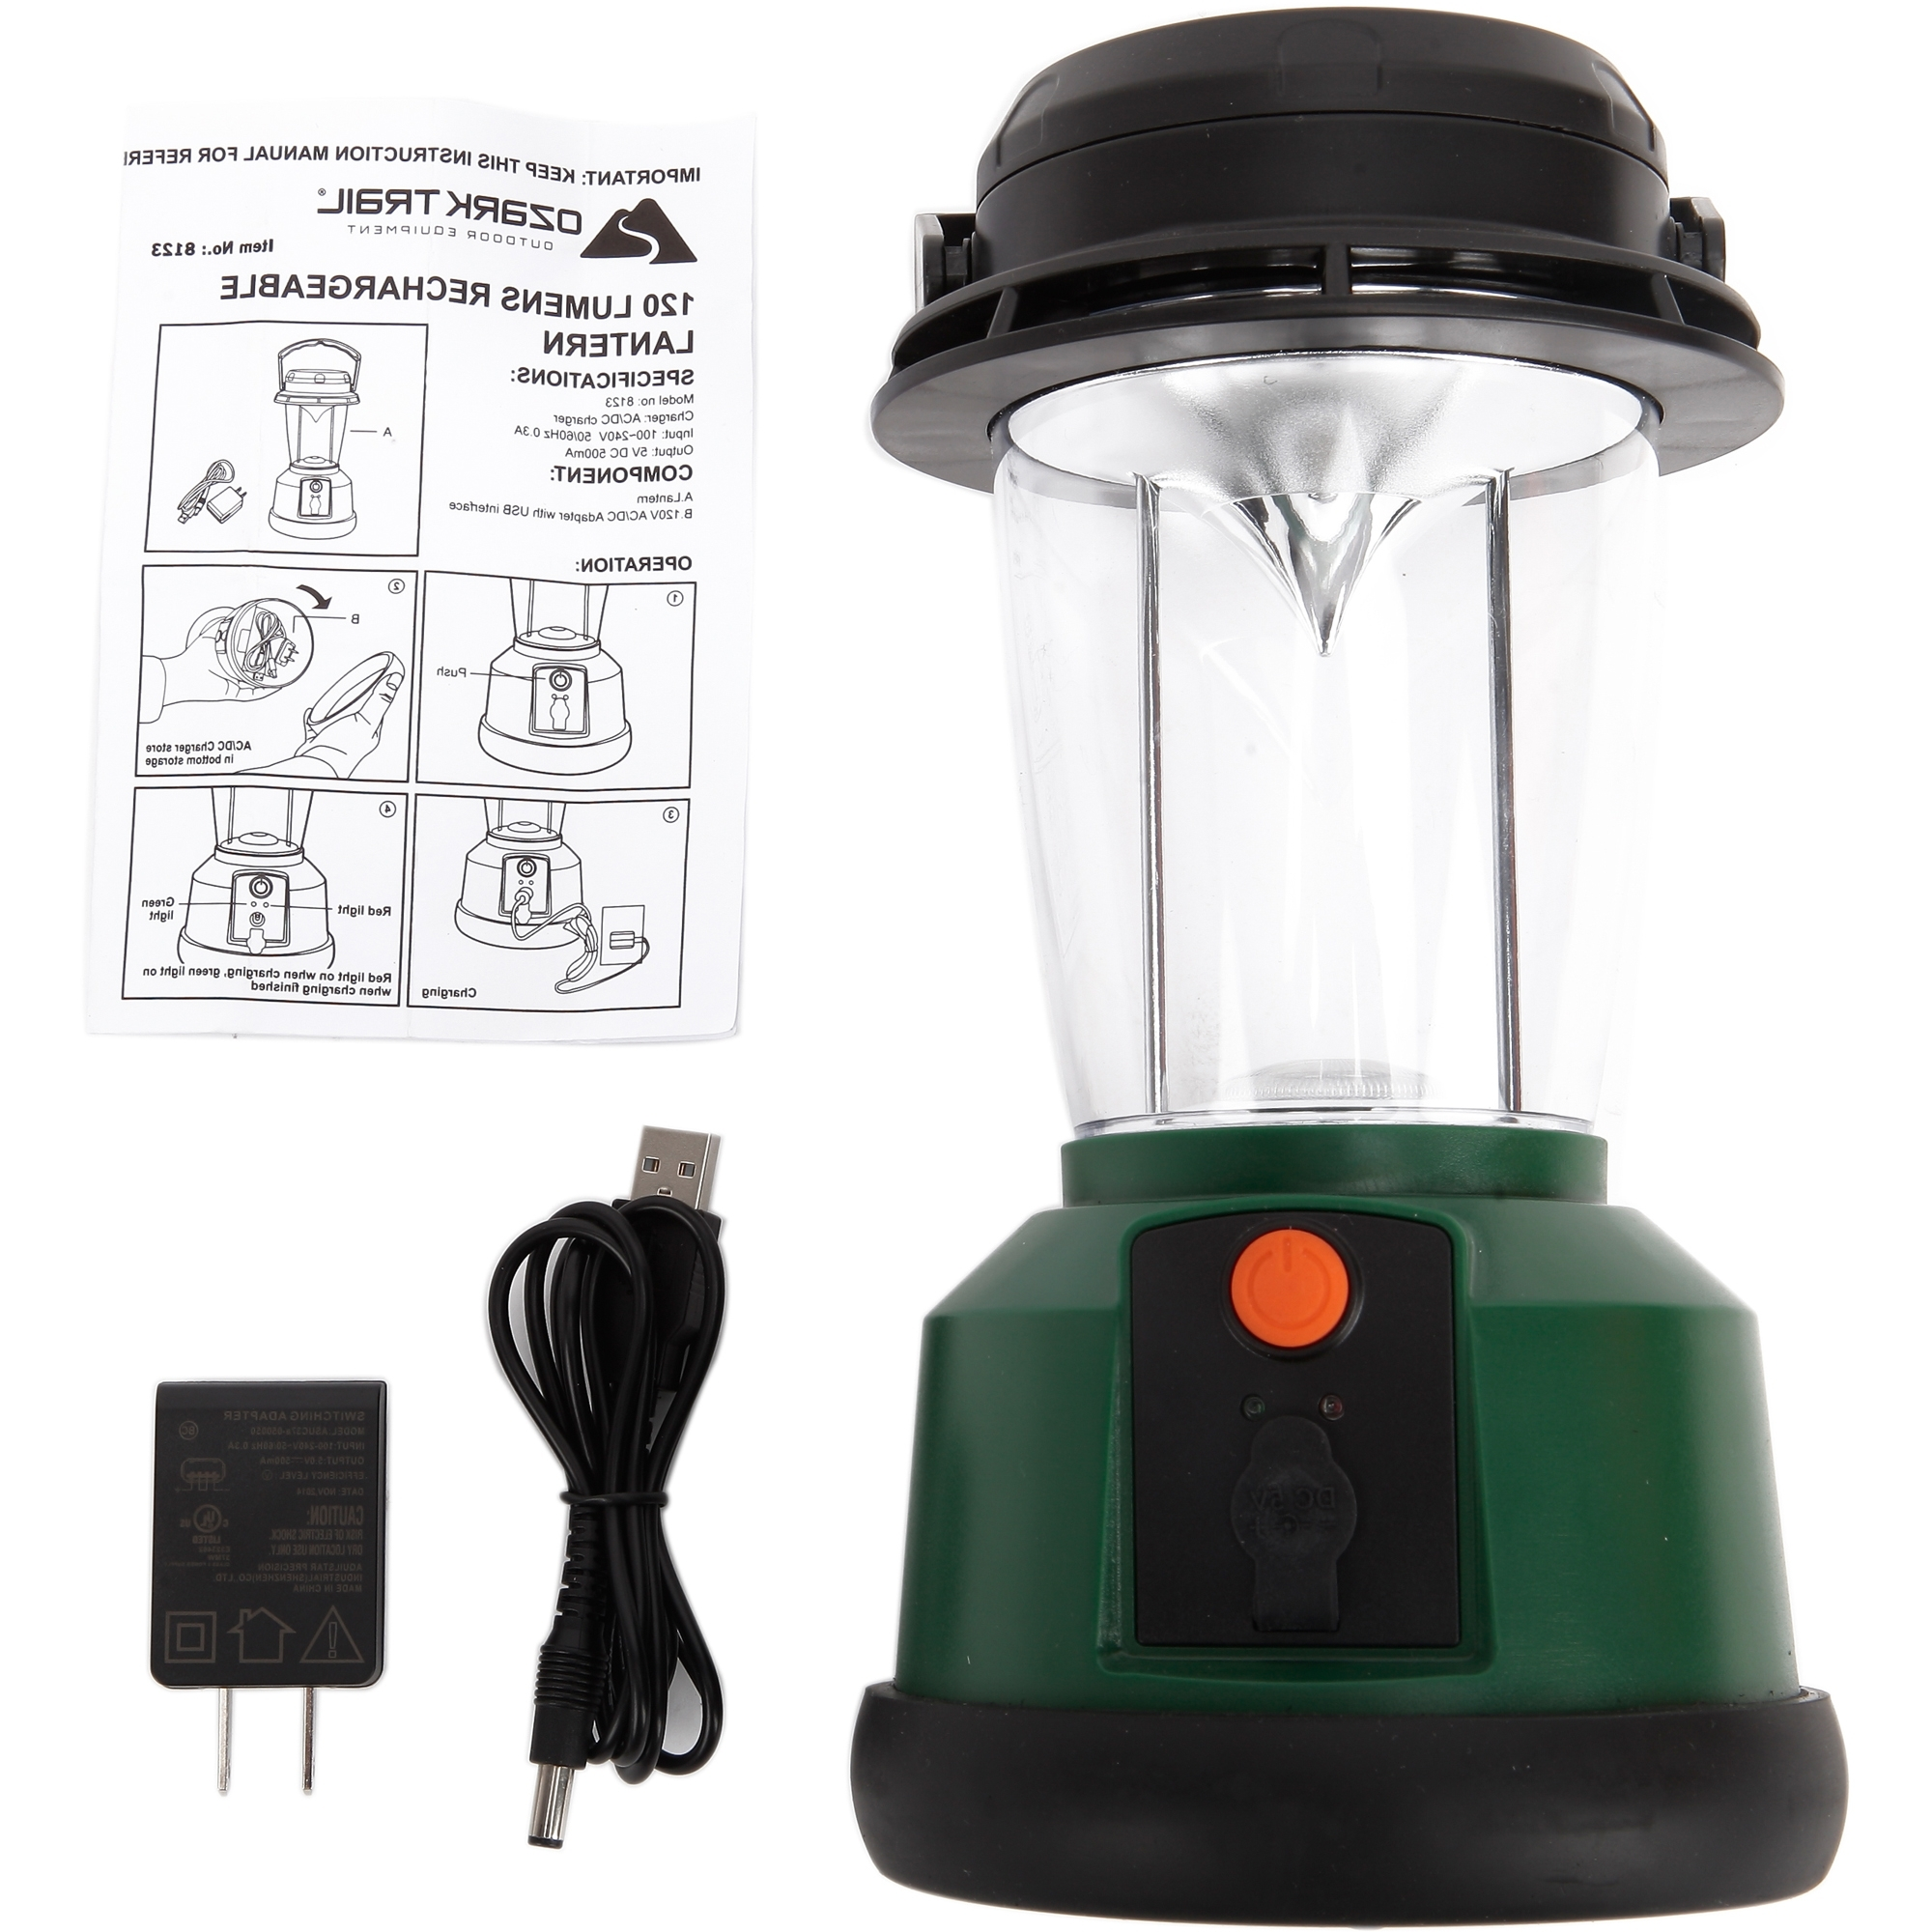 Outdoor Rechargeable Lanterns Pertaining To Most Popular Led Rechargeable Lantern With 3 Mods And Usb Interface, 120 Lumens (View 11 of 20)